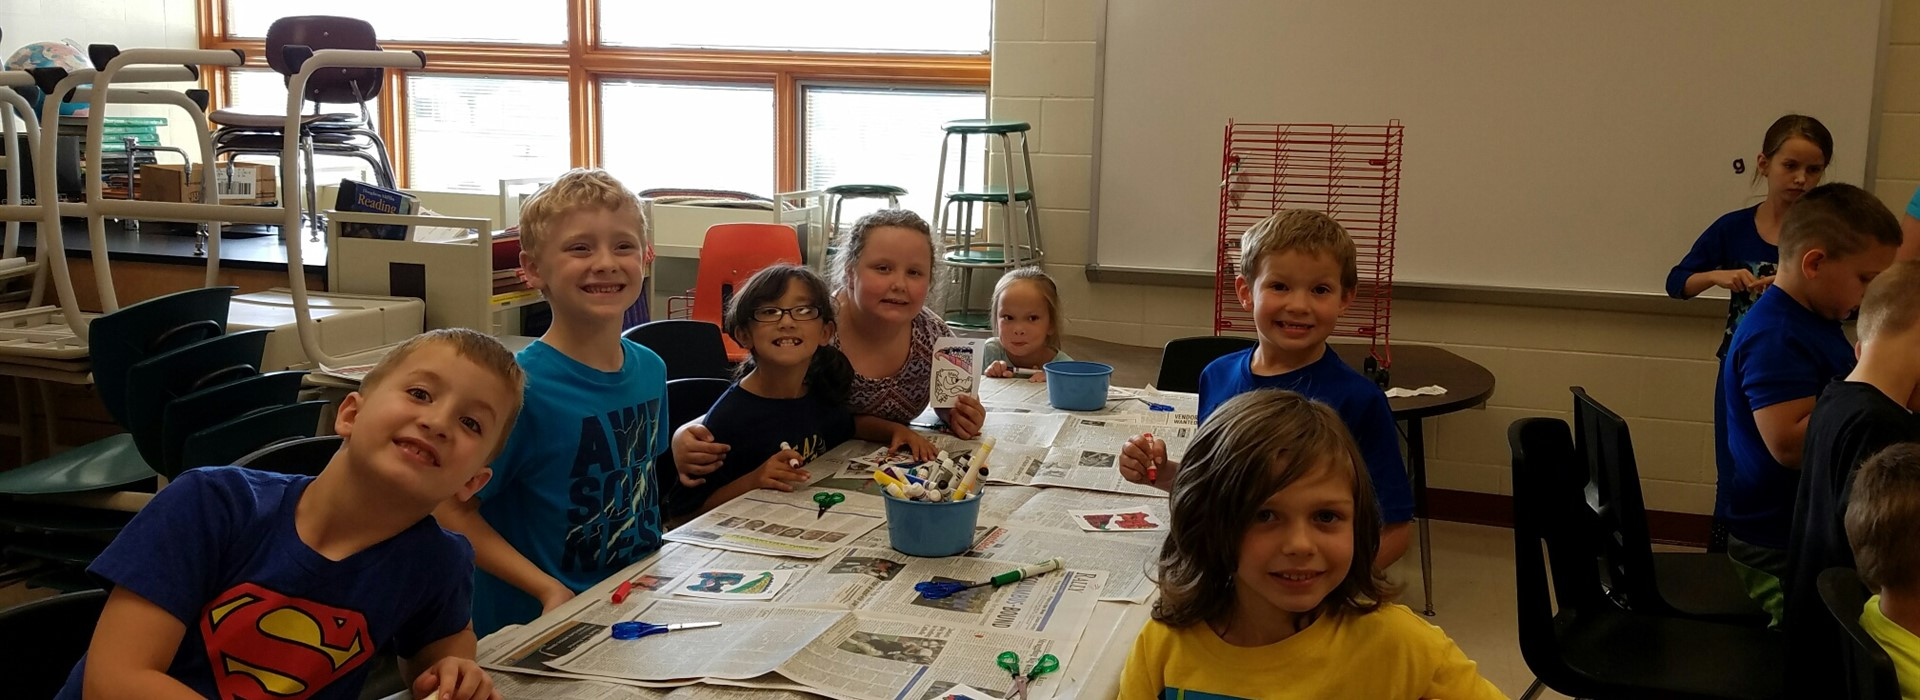 Students at NES having fun at the PTO's after-school art program